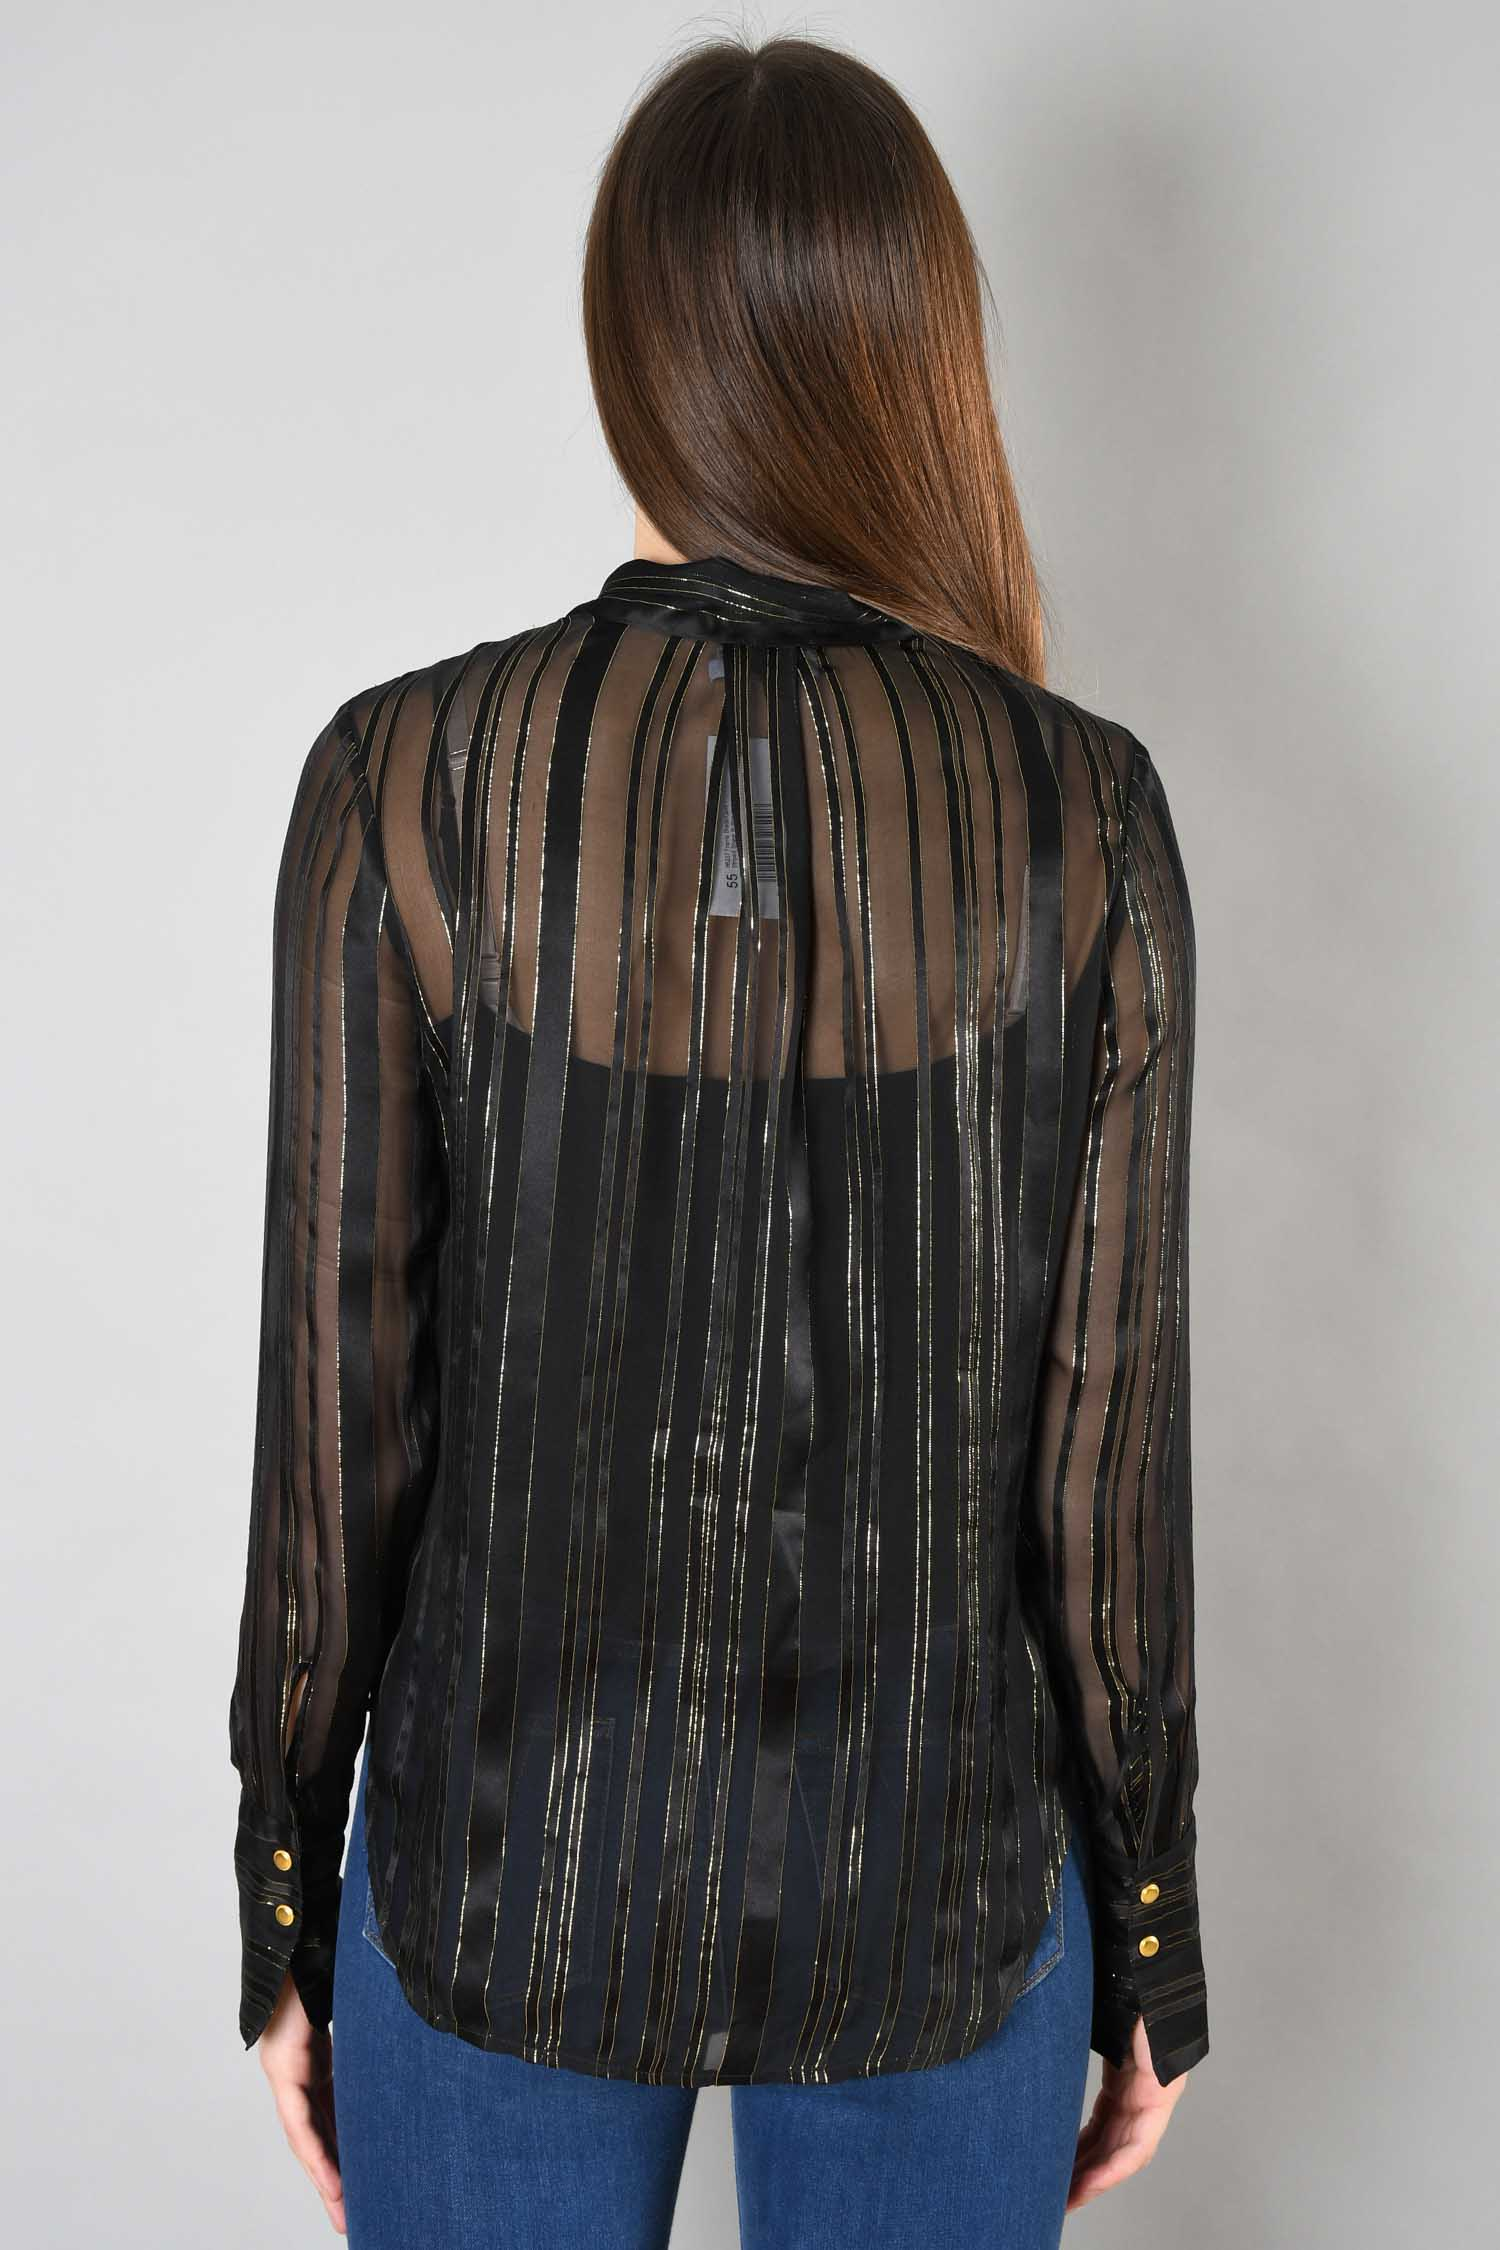 Frame Black/Gold Striped Sheer Button Up Size M